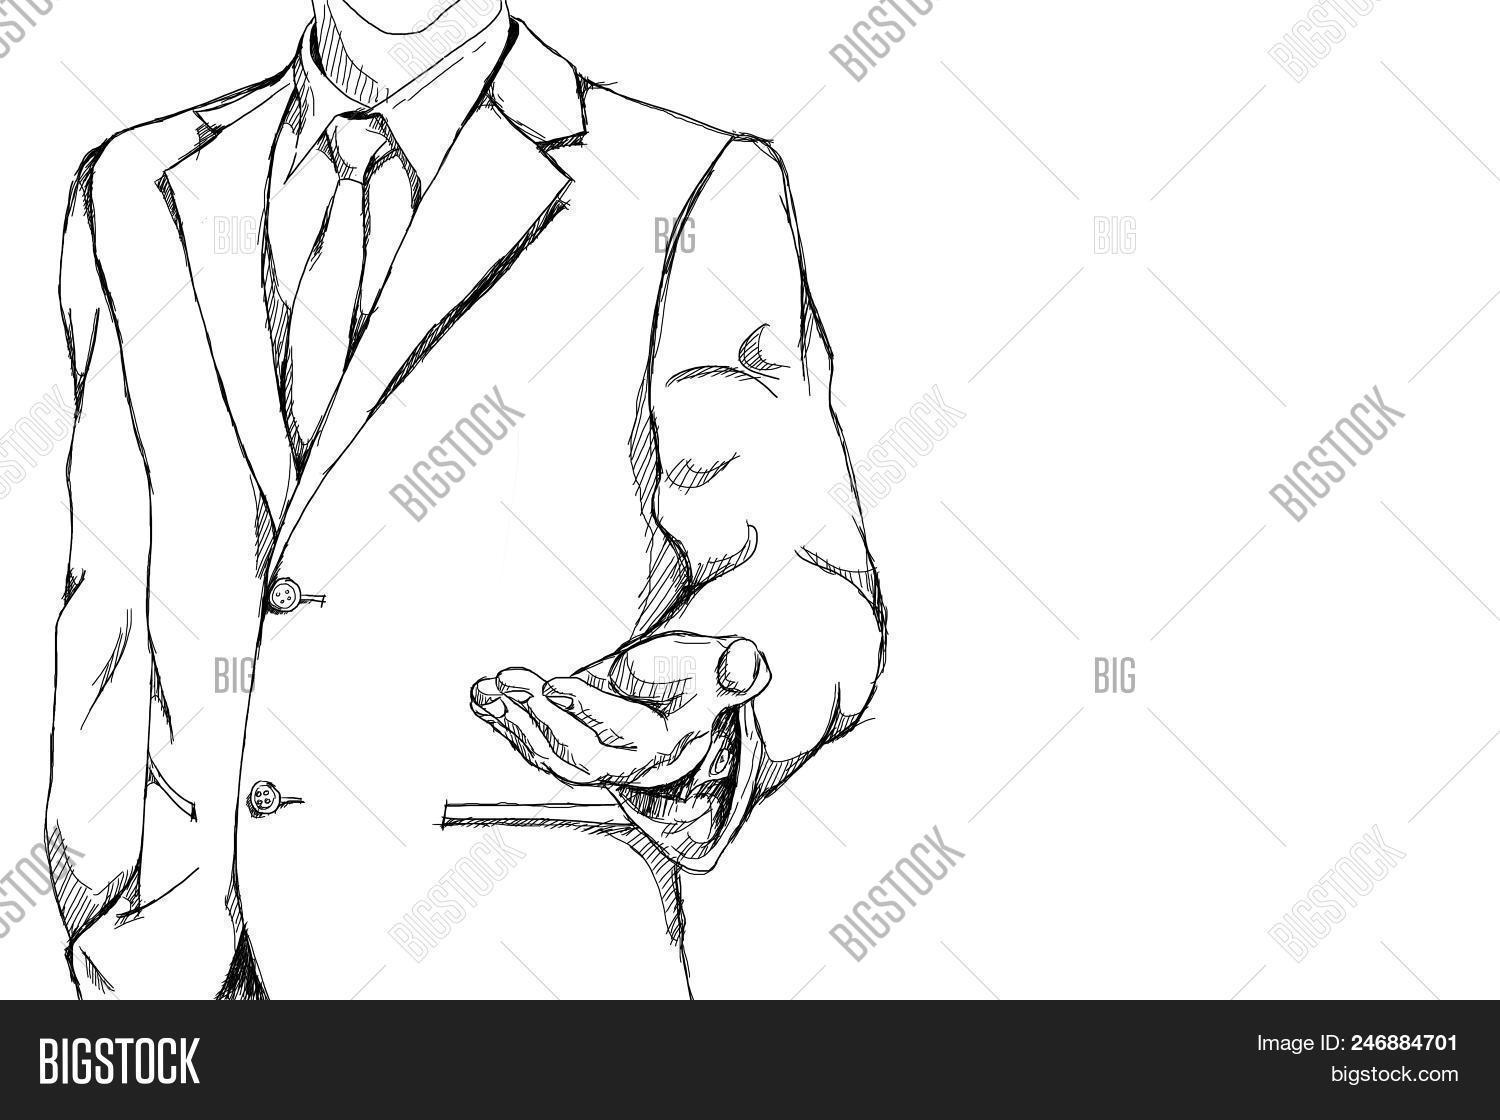 Drawing sketch simple image photo free trial bigstock drawing sketch simple line of business man with open palm hand action for invite meaning on stopboris Images